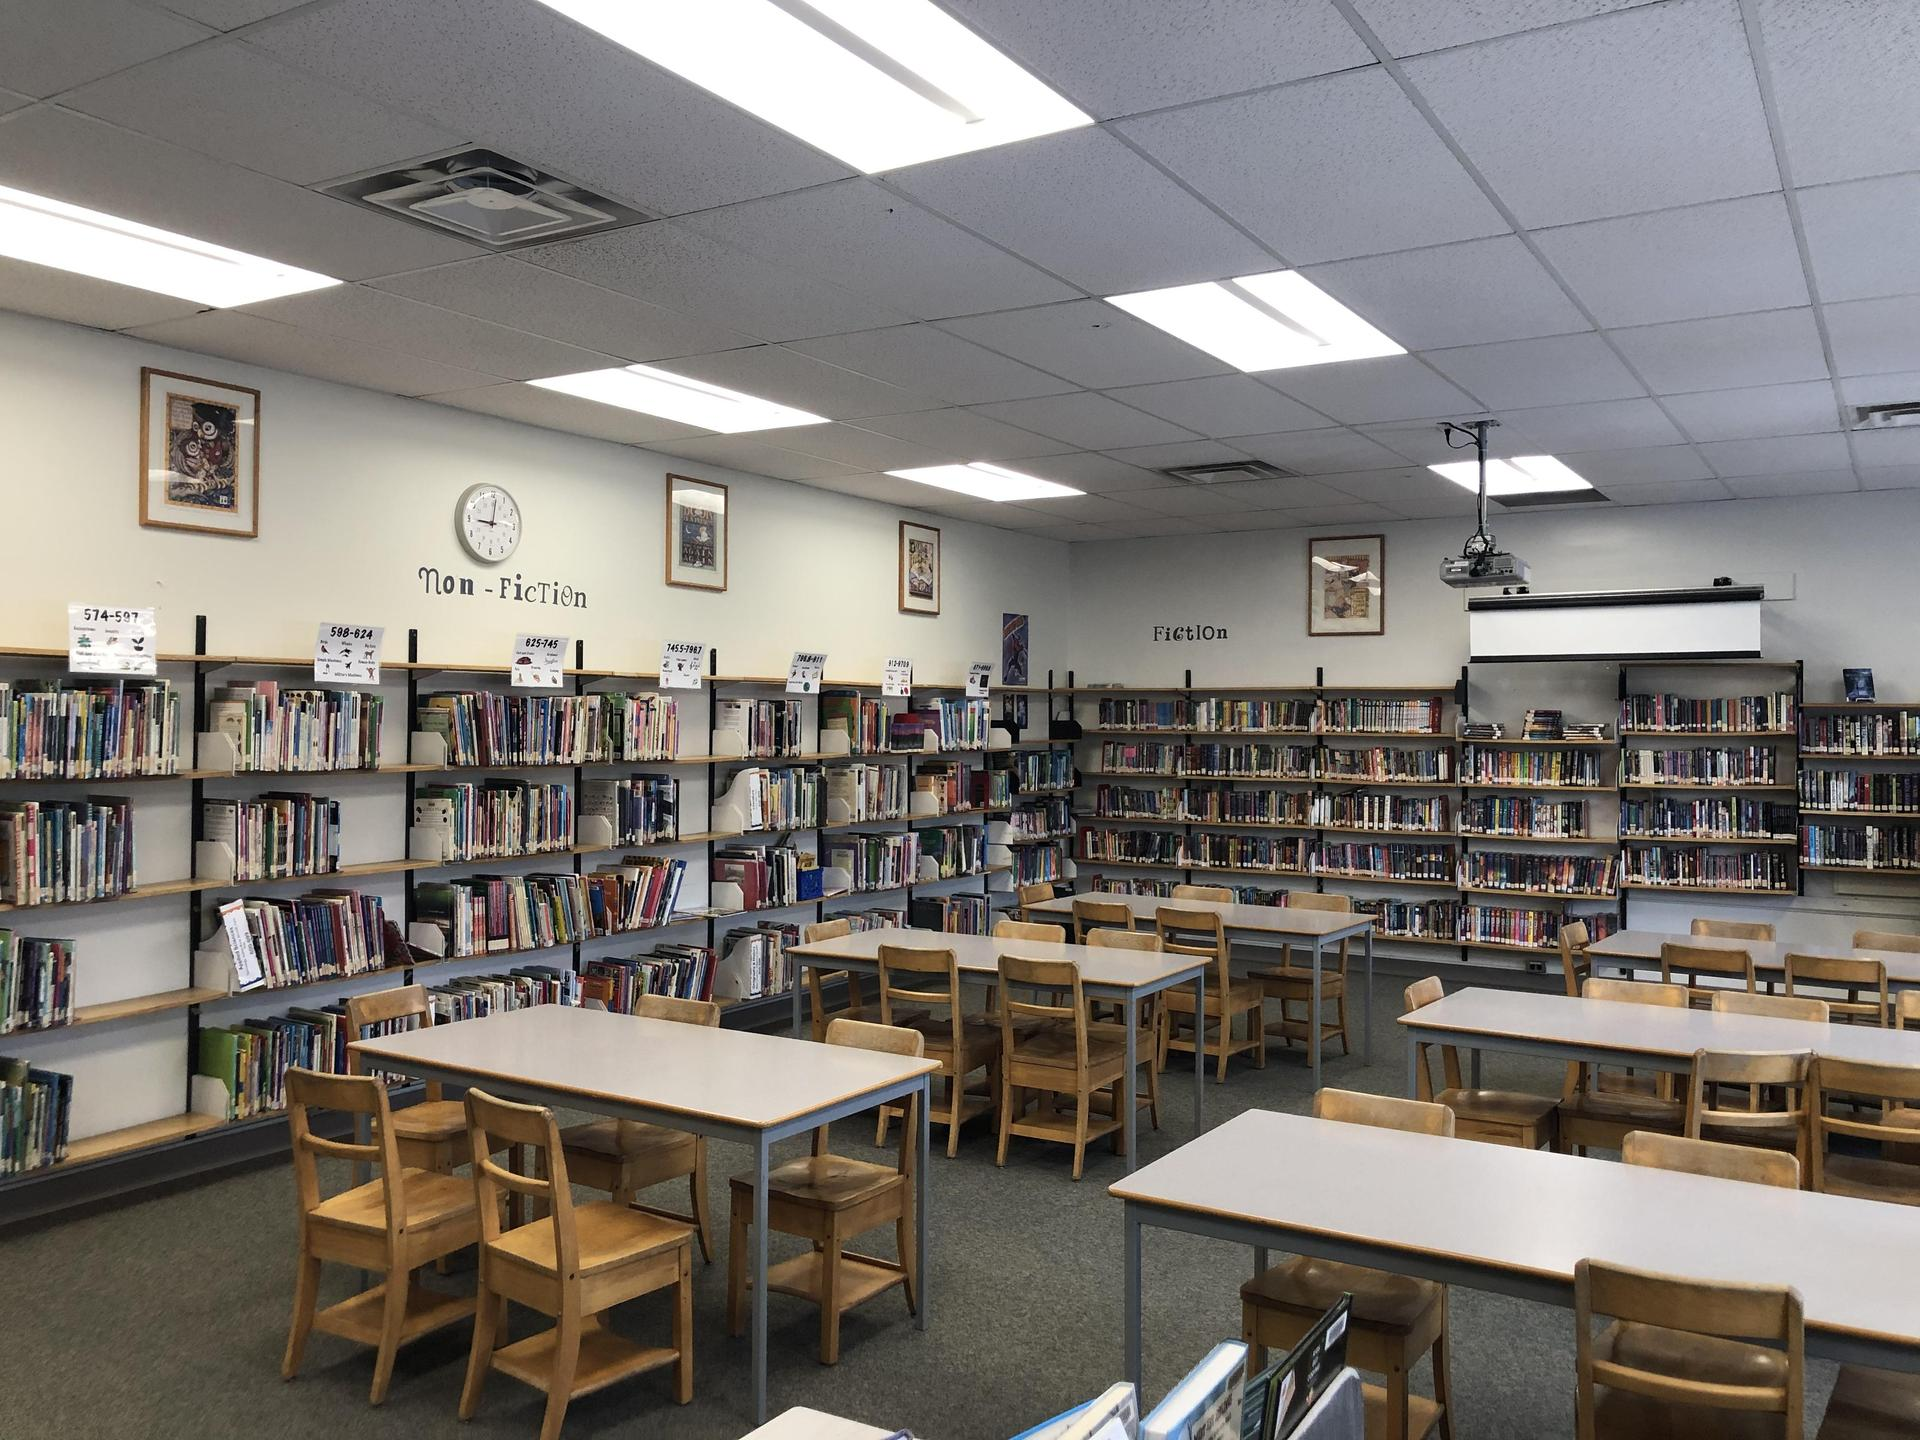 Our collaborative work area and Non-Fiction section